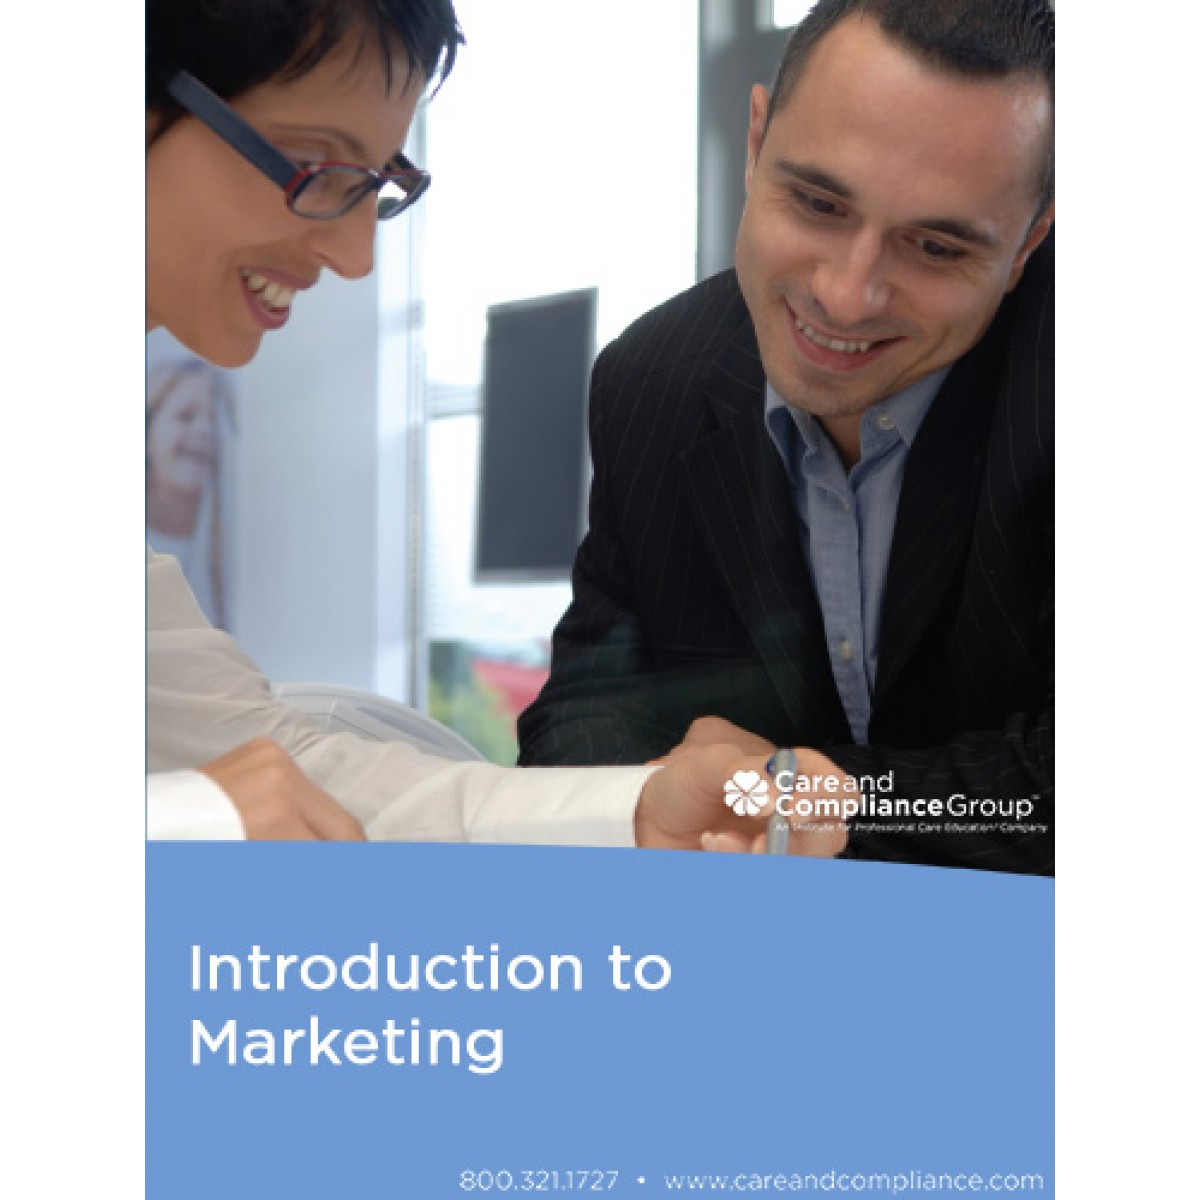 introduction to marketing introduction to marketing Introduction to marketing course has been designed to develop your skills within the specific graduate capability area of critical, analytical and integrative thinking.